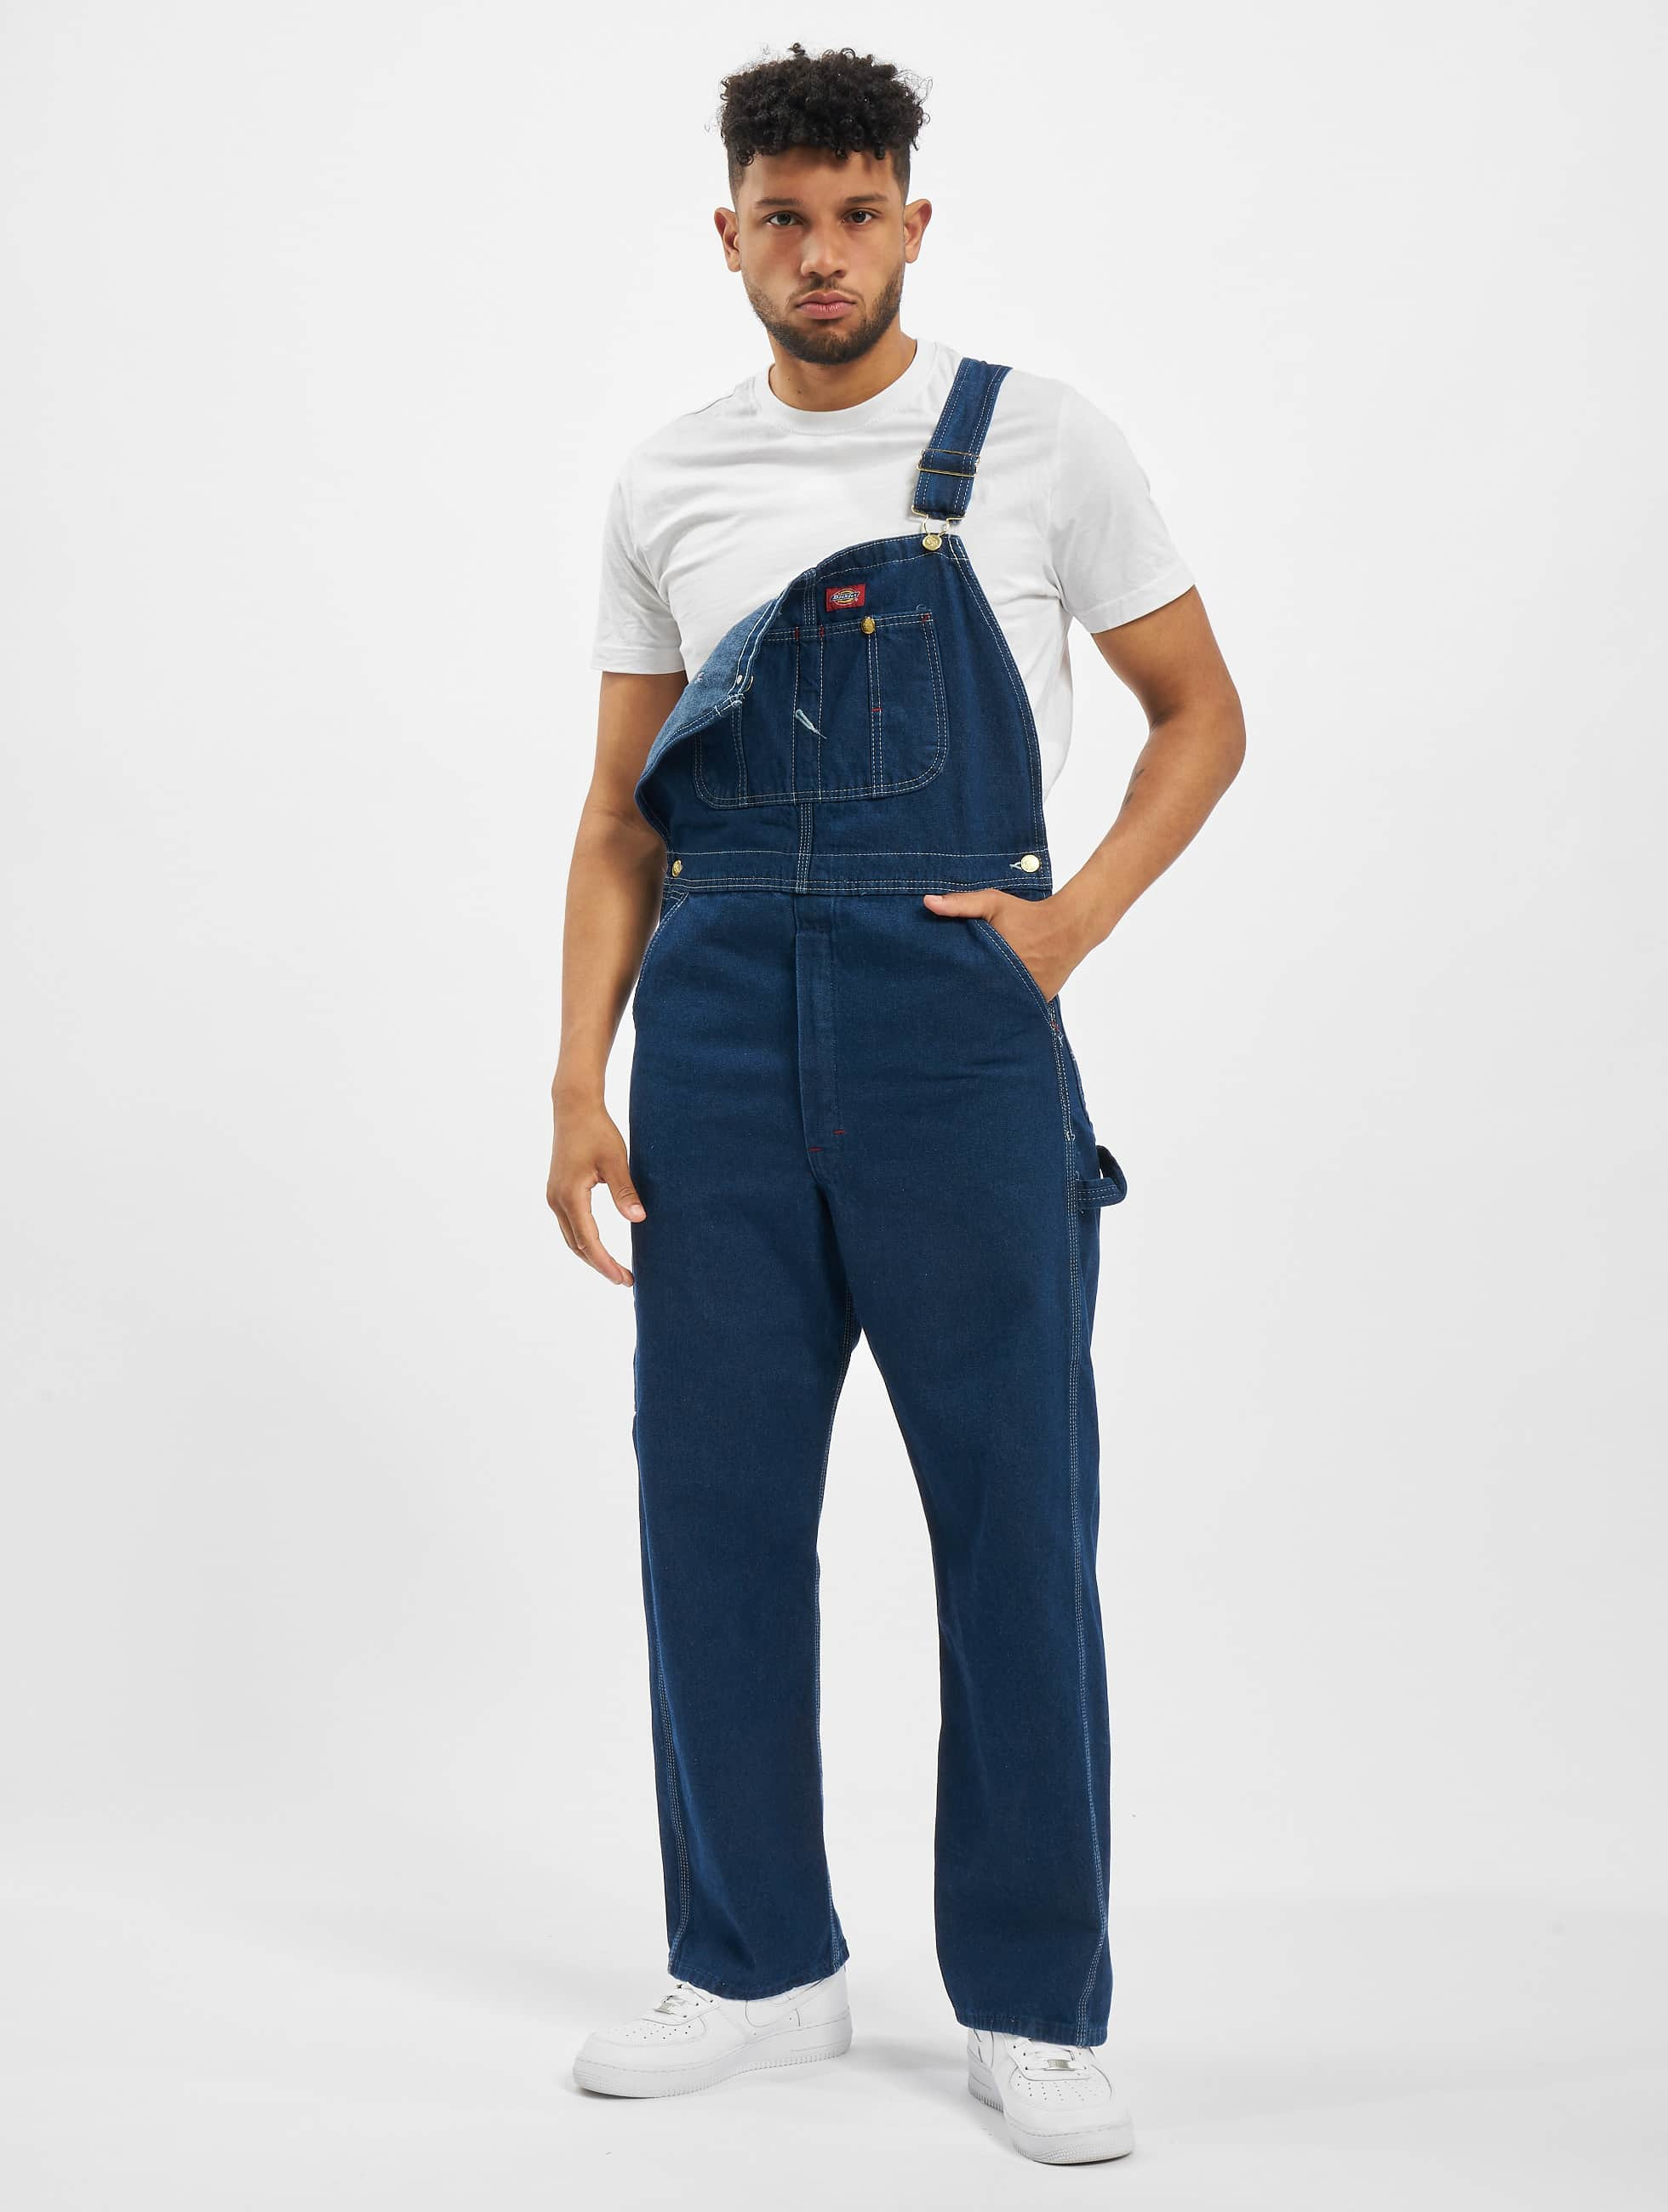 Straight Fit Jeans Bib Overall in blau